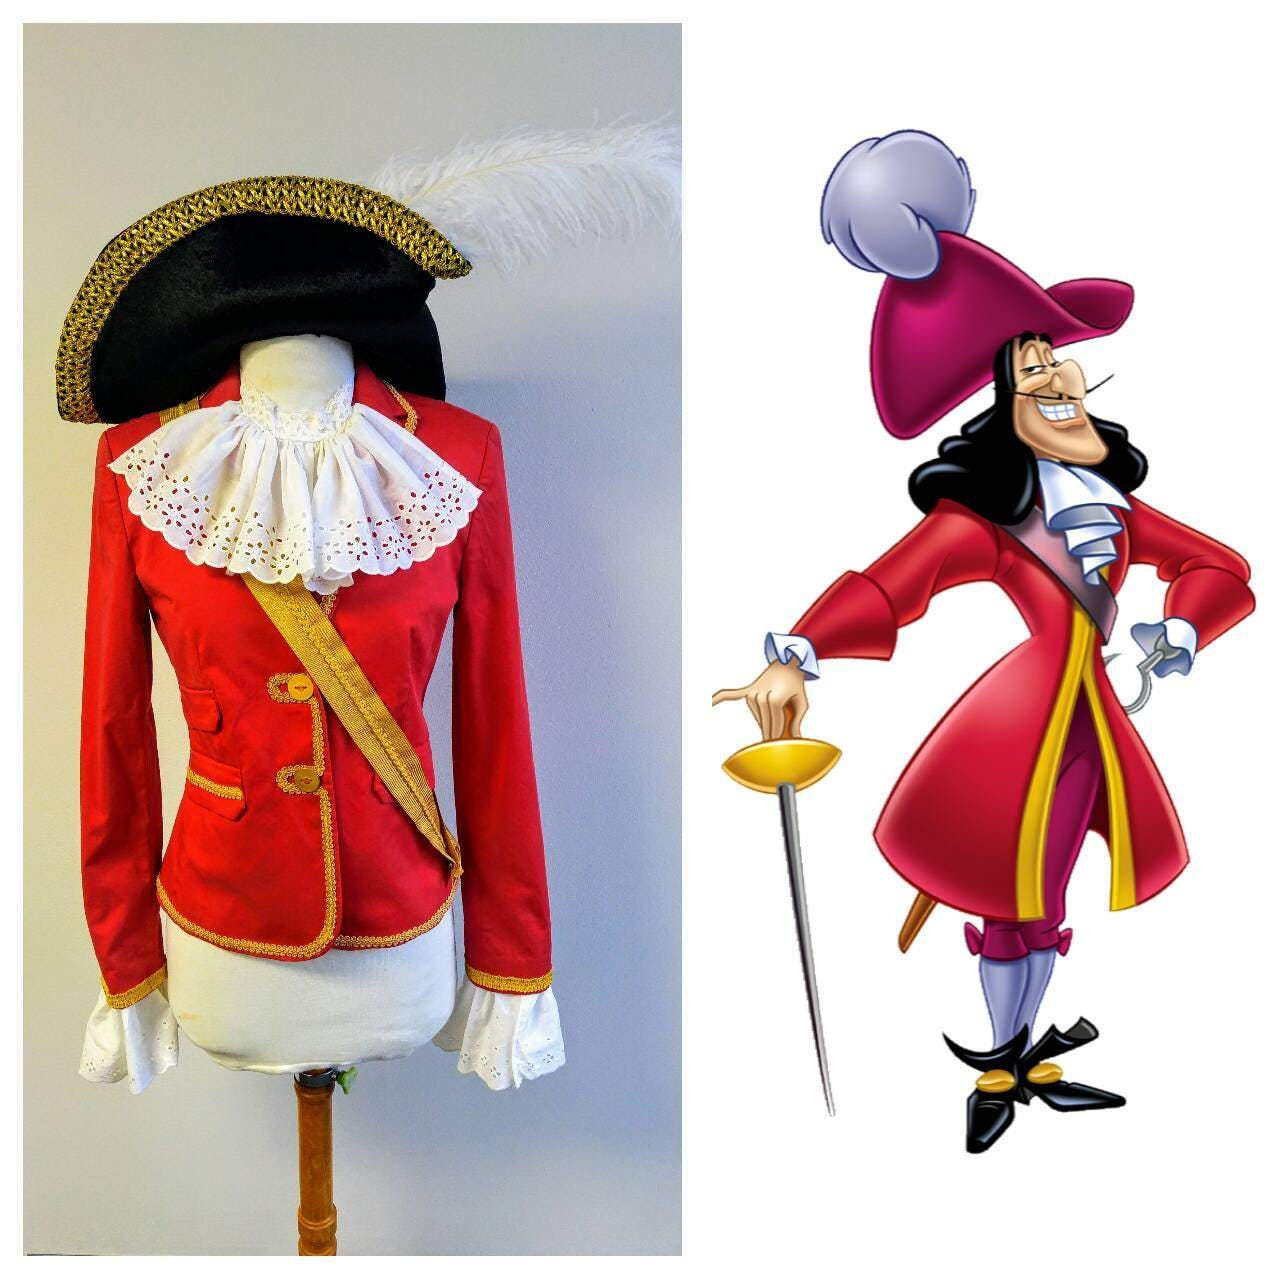 Costume de peter pan upcycled custom capitaine crochet pirate - Peter pan et capitaine crochet ...